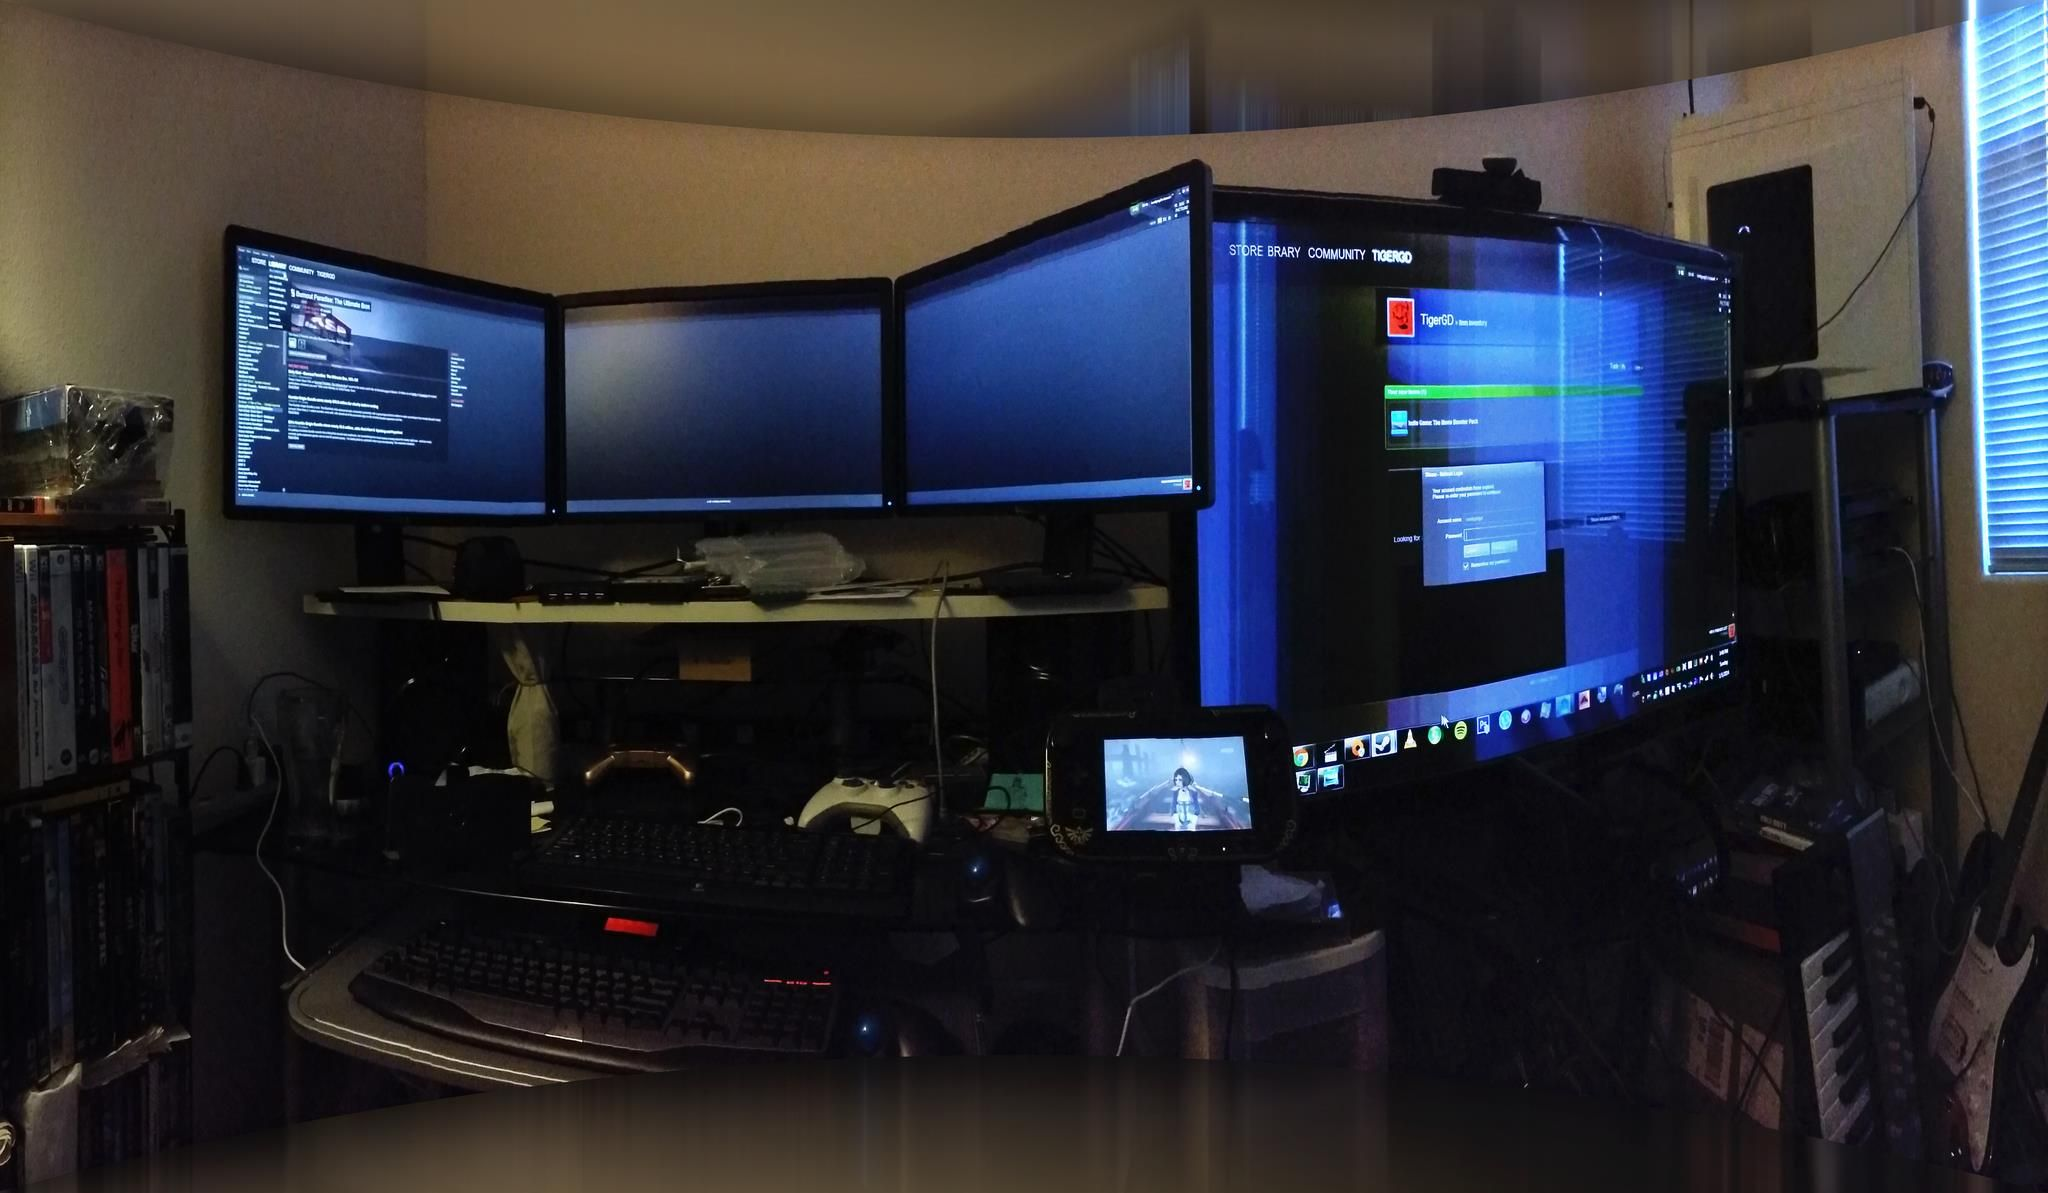 Game Room Of The Mansion Quotev Slender Mansion Rp: how to make a gaming setup in your room